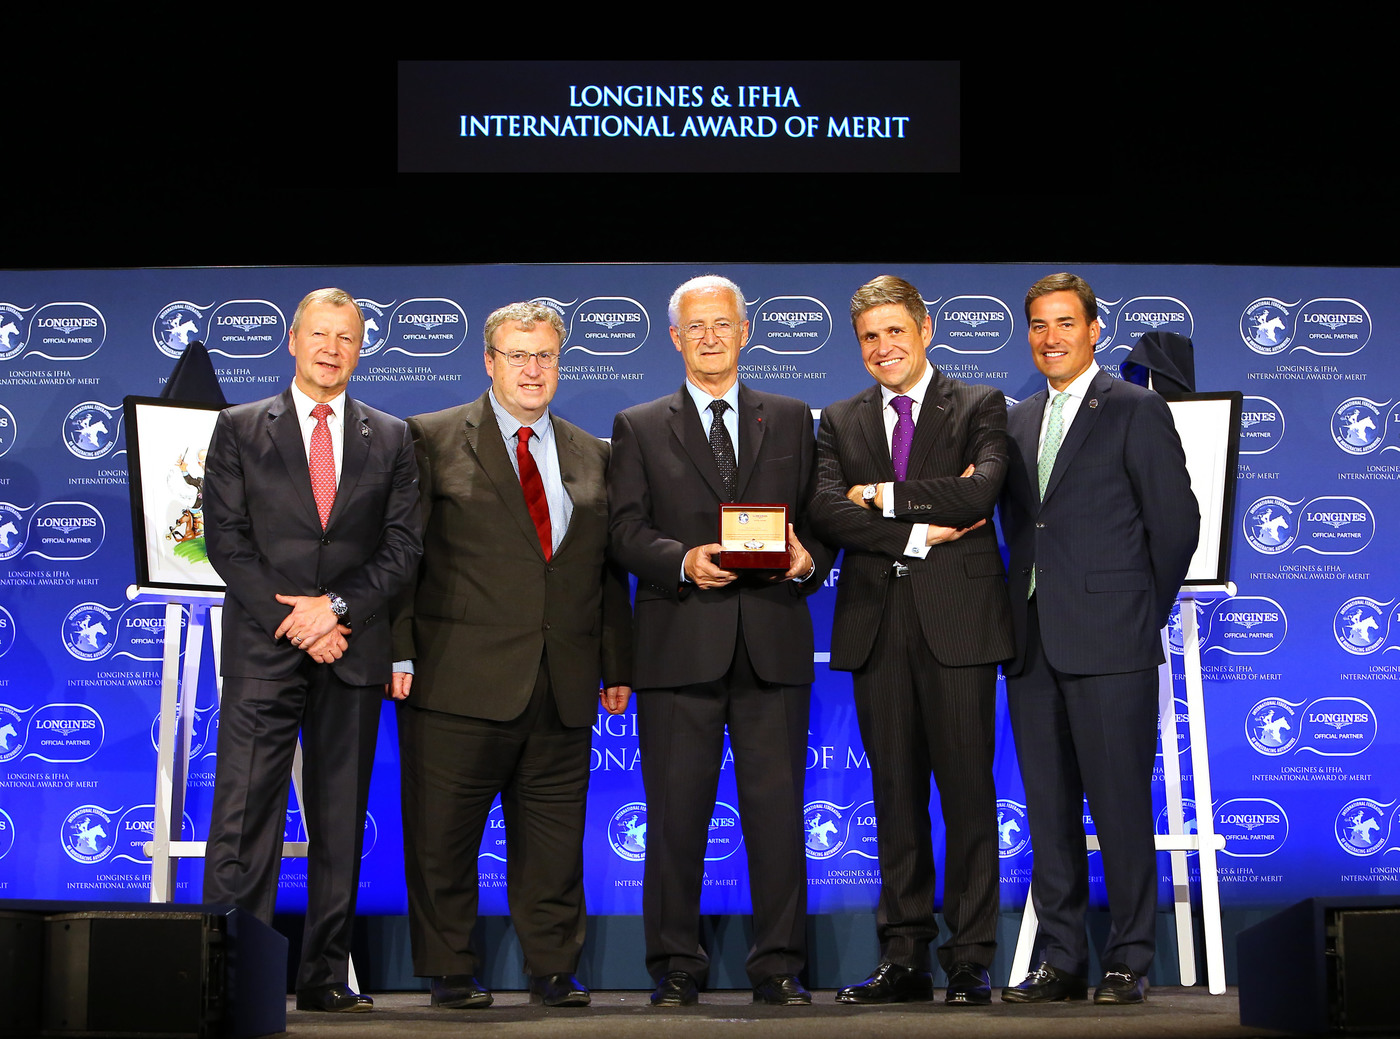 Longines Corporate Event: 2016 Longines and International Federation of Horseracing Authorities (IFHA) International Award of Merit goes to the Romanet Family, long renowned leaders in French and international world of horseracing 5